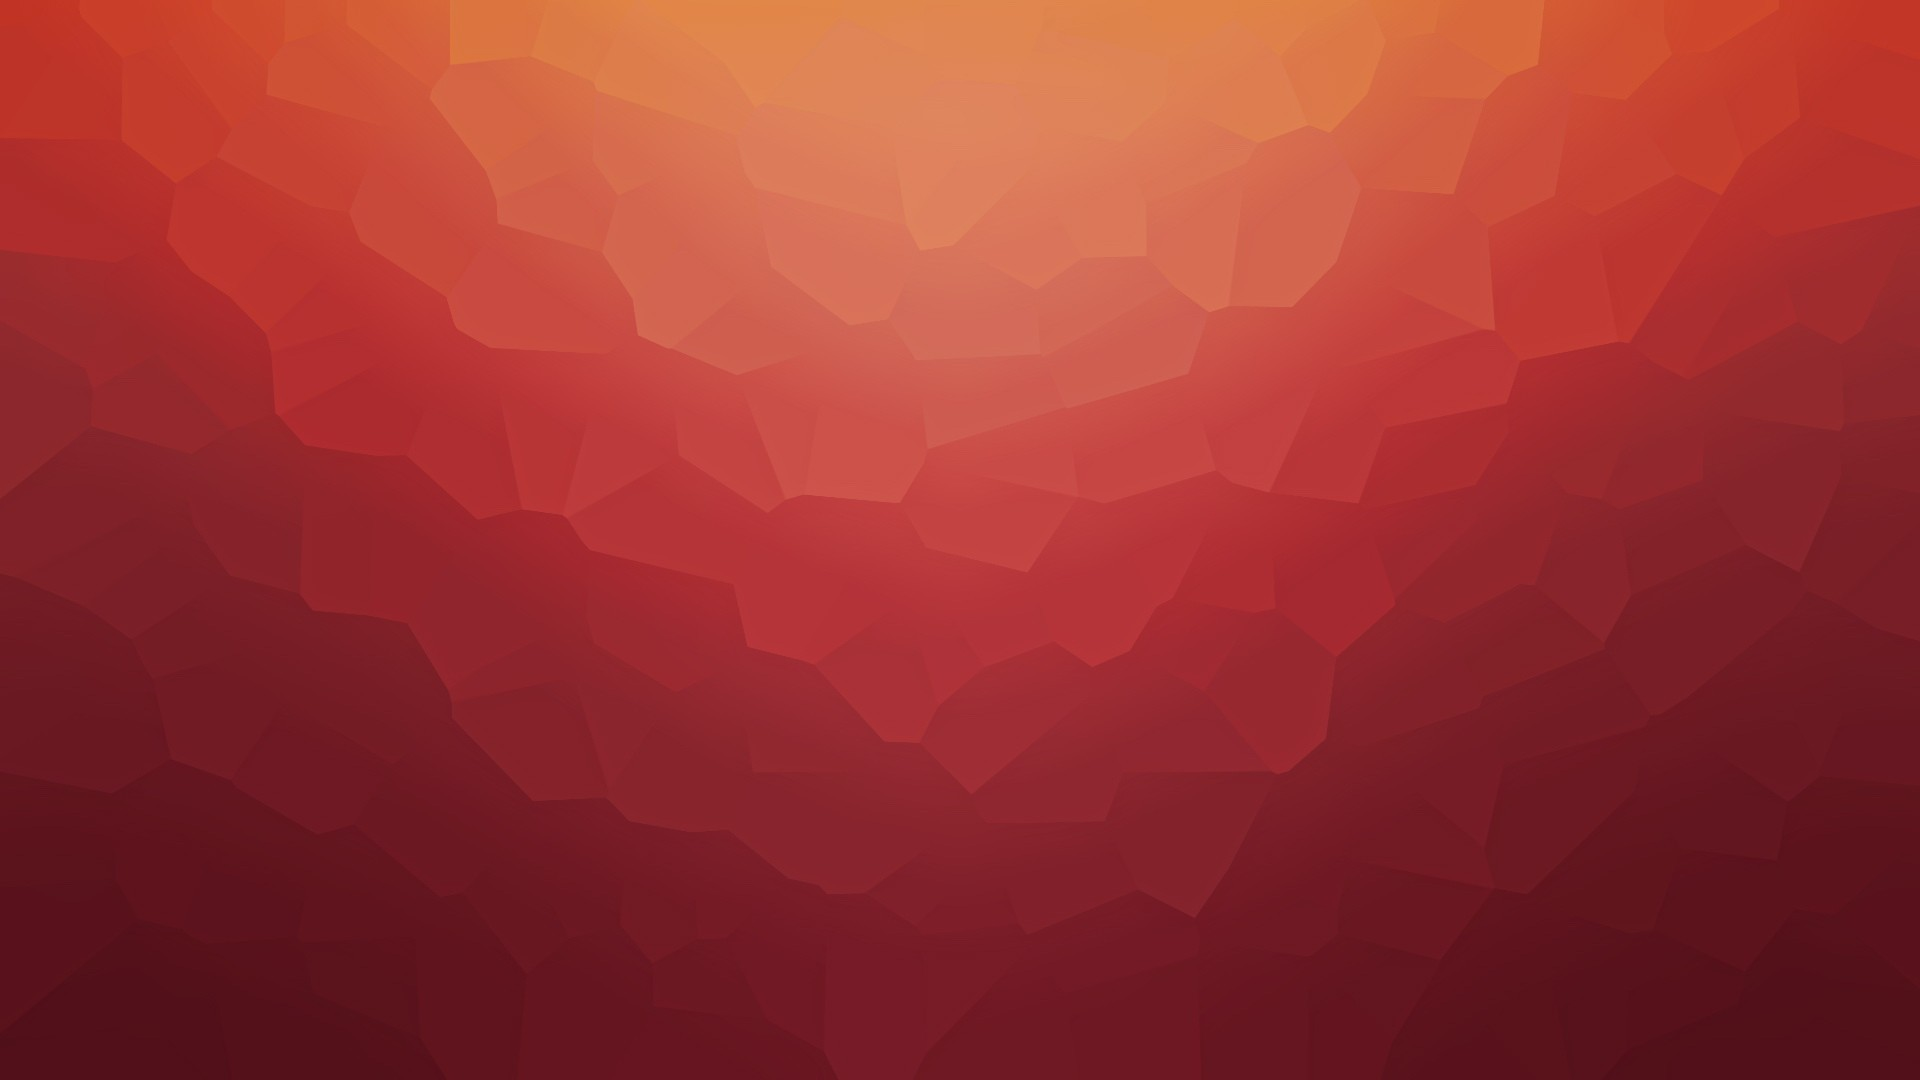 Abstract Red desktop PC and Mac wallpaper